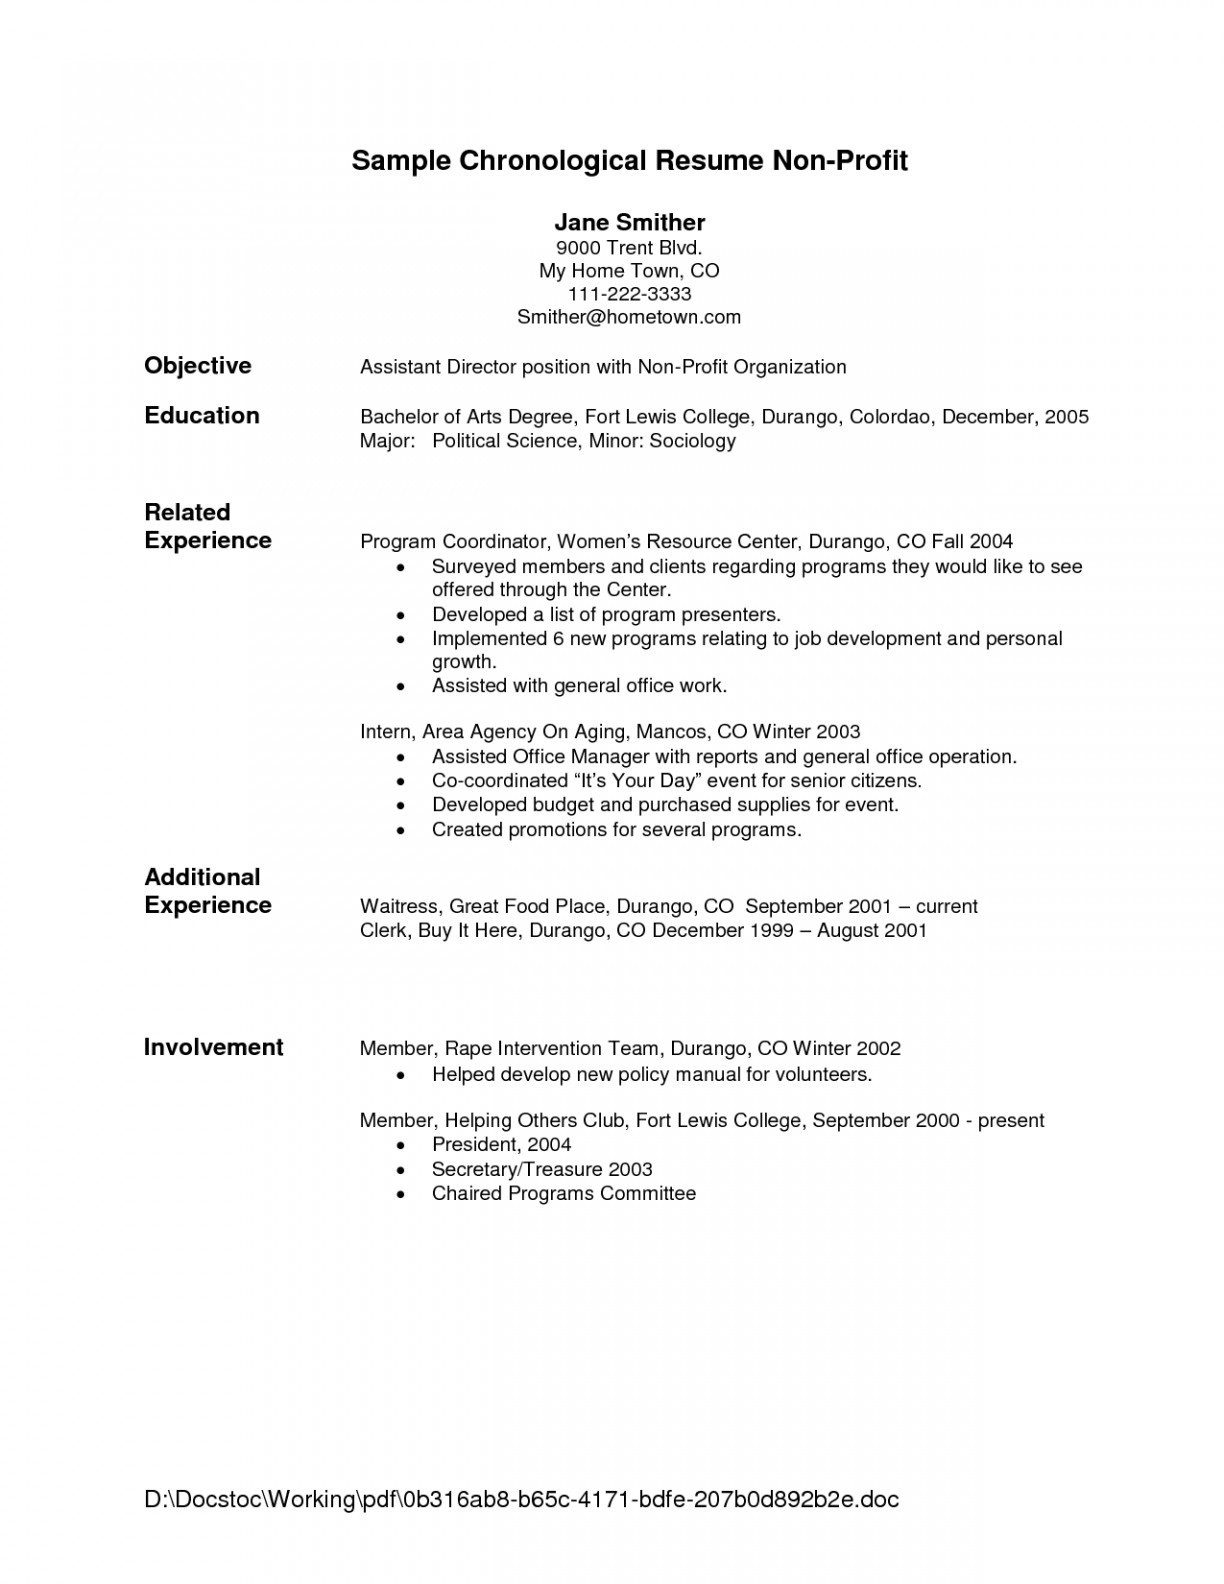 Bartender Duties for Resume - 22 Bartender Duties Resume